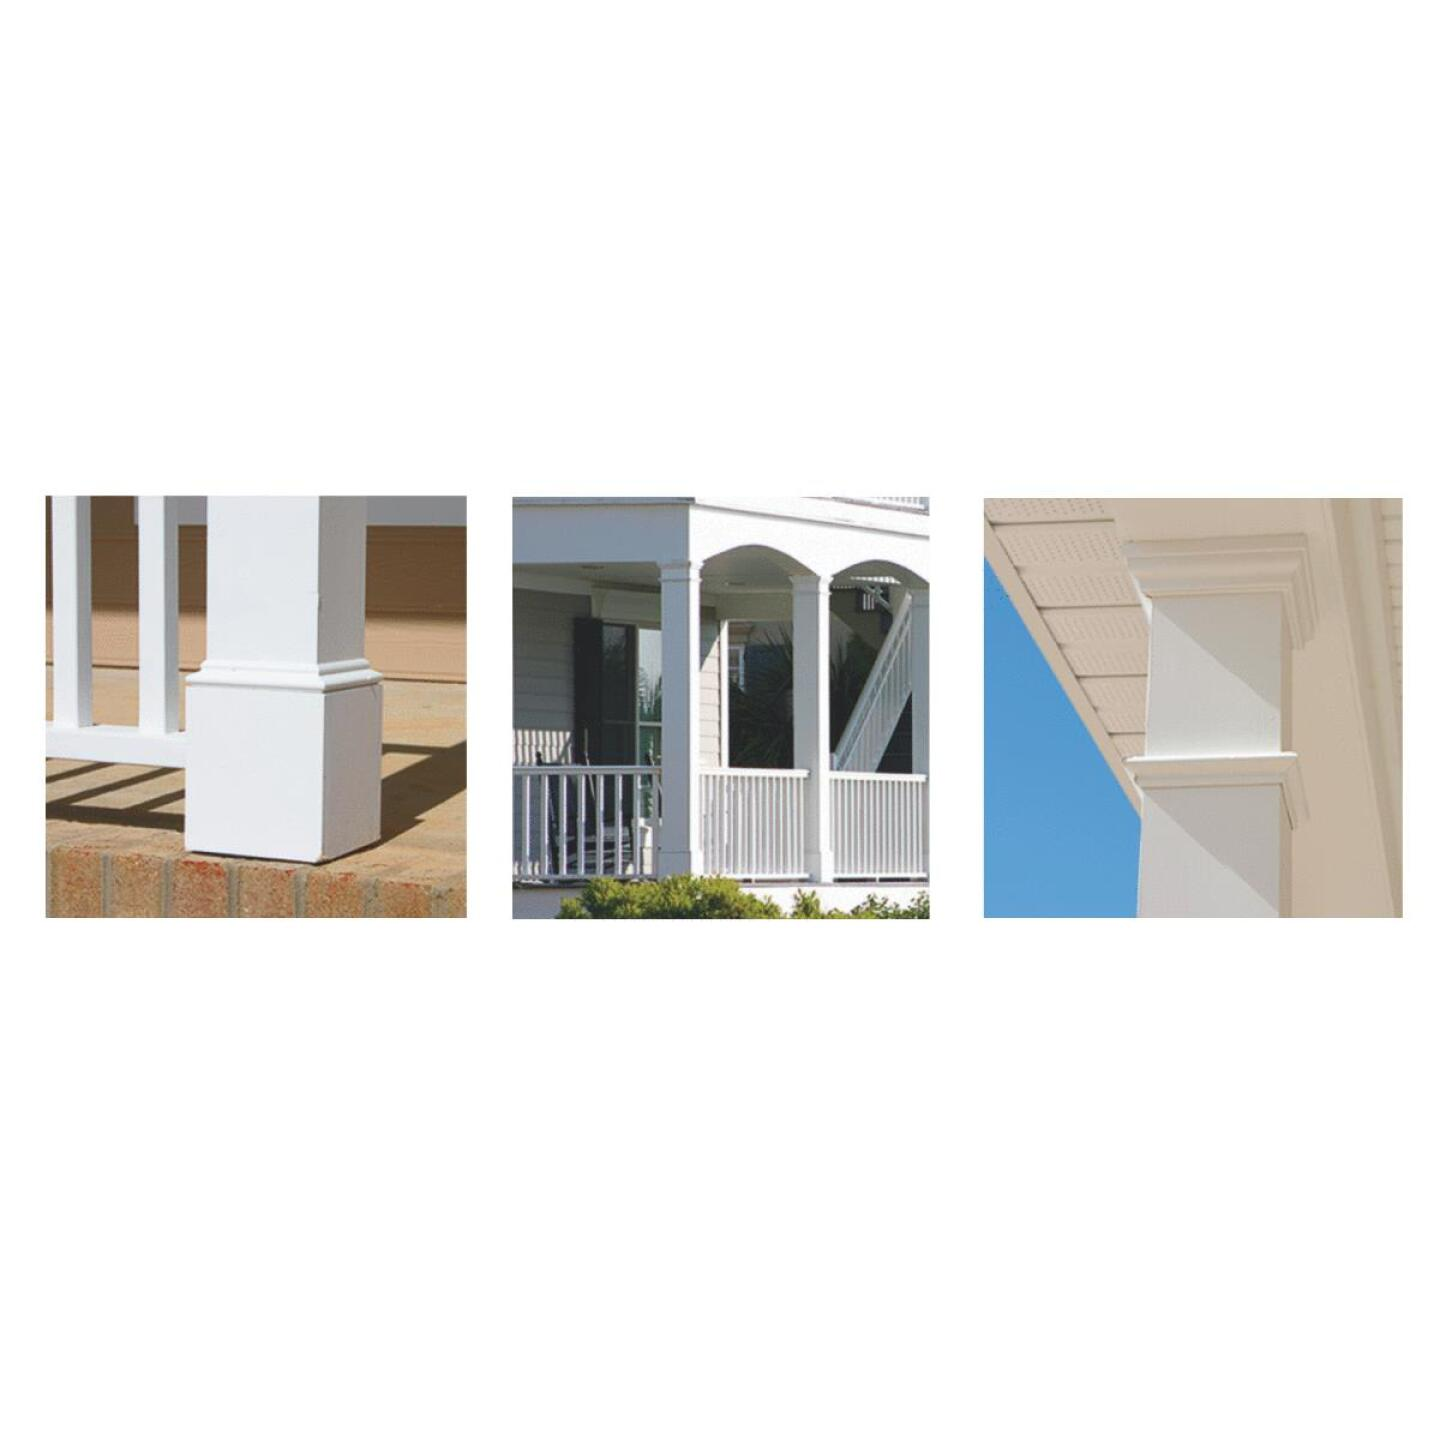 Crown Column DuraSnap 6 In. W x 6 In. H x 120 In. L White PVC Post Wrap Image 2